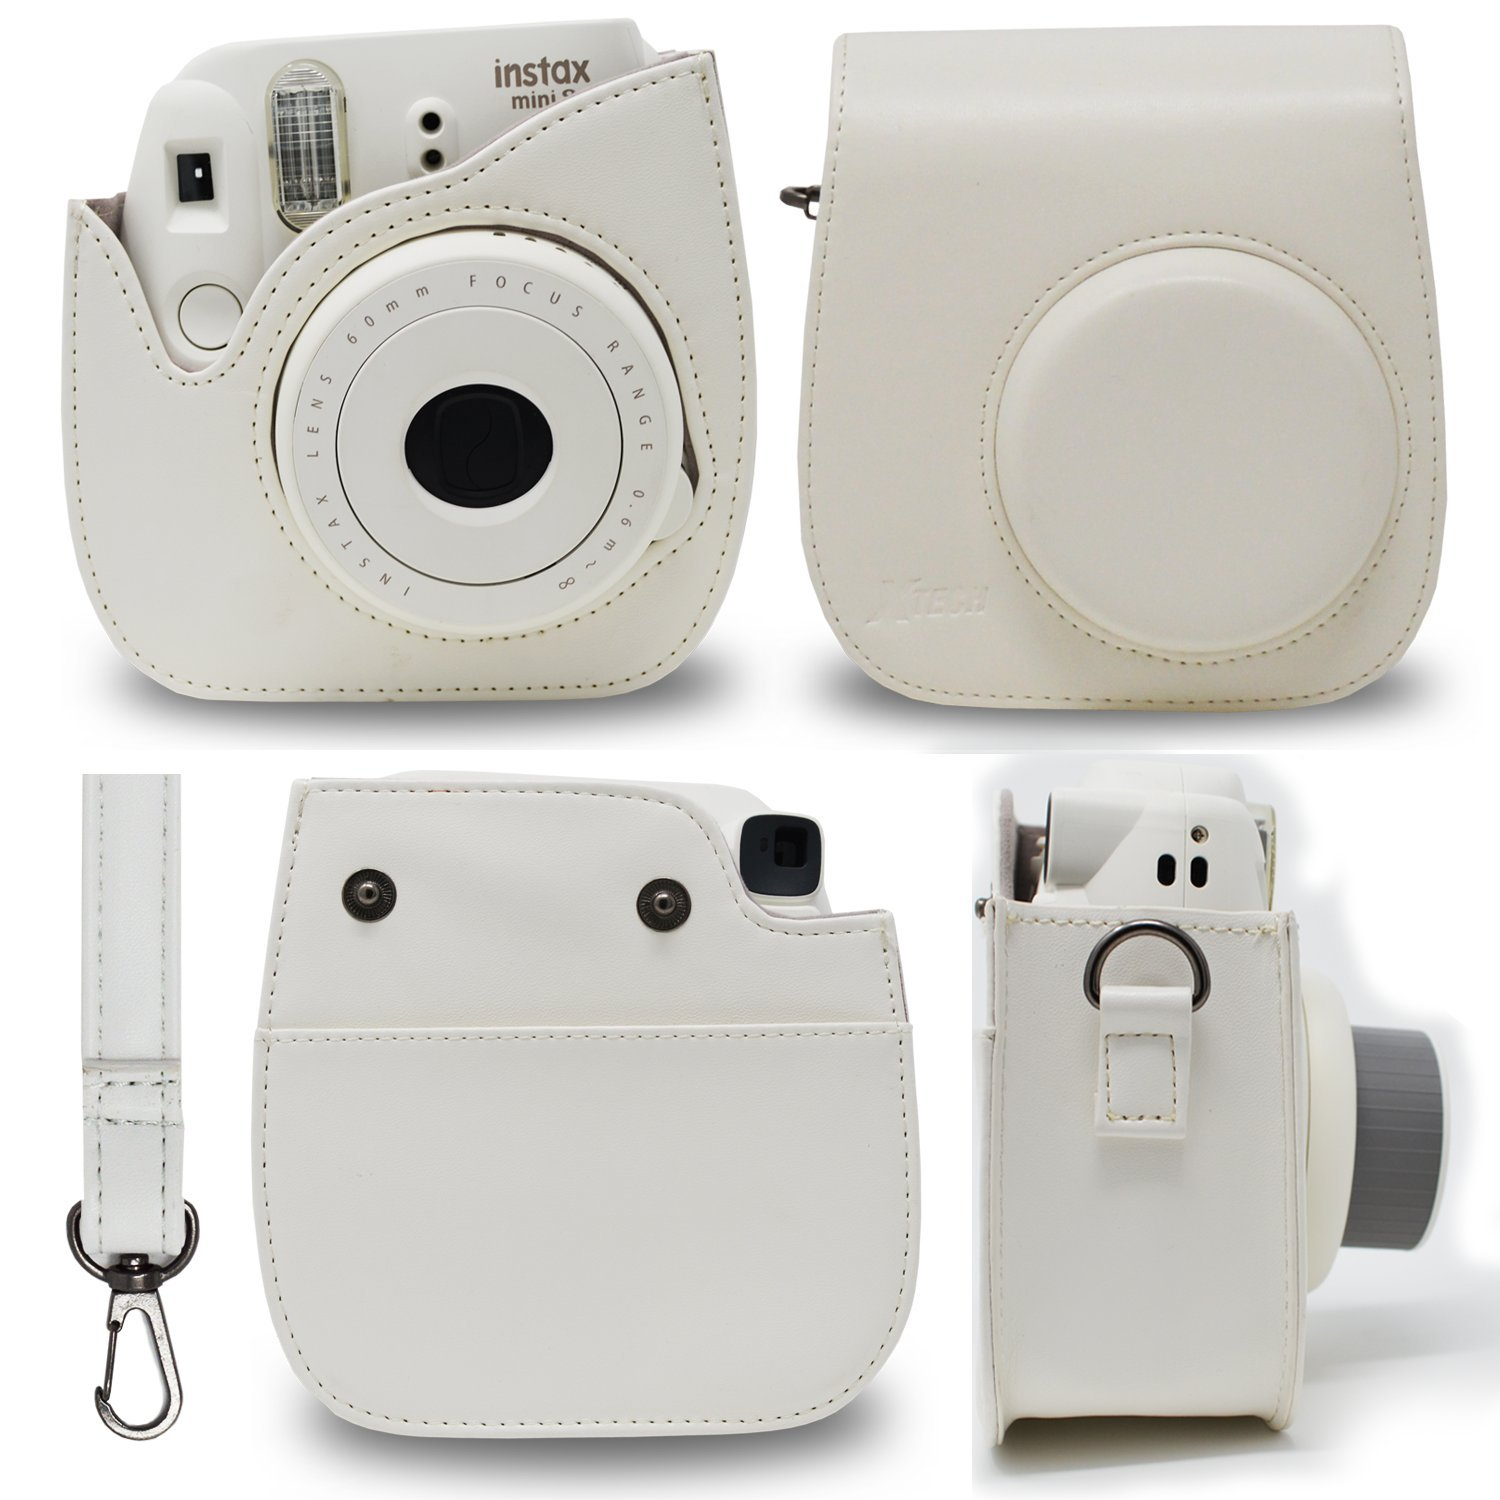 Fujifilm Instax Mini 9 Instant Fuji Camera SMOKEY WHITE (NEW 2017 Release) + Accessories Bundle + Custom Matching Case + Photo Album + Assorted Frames + 4 Color Filters + 60 Sticker Frames + MORE